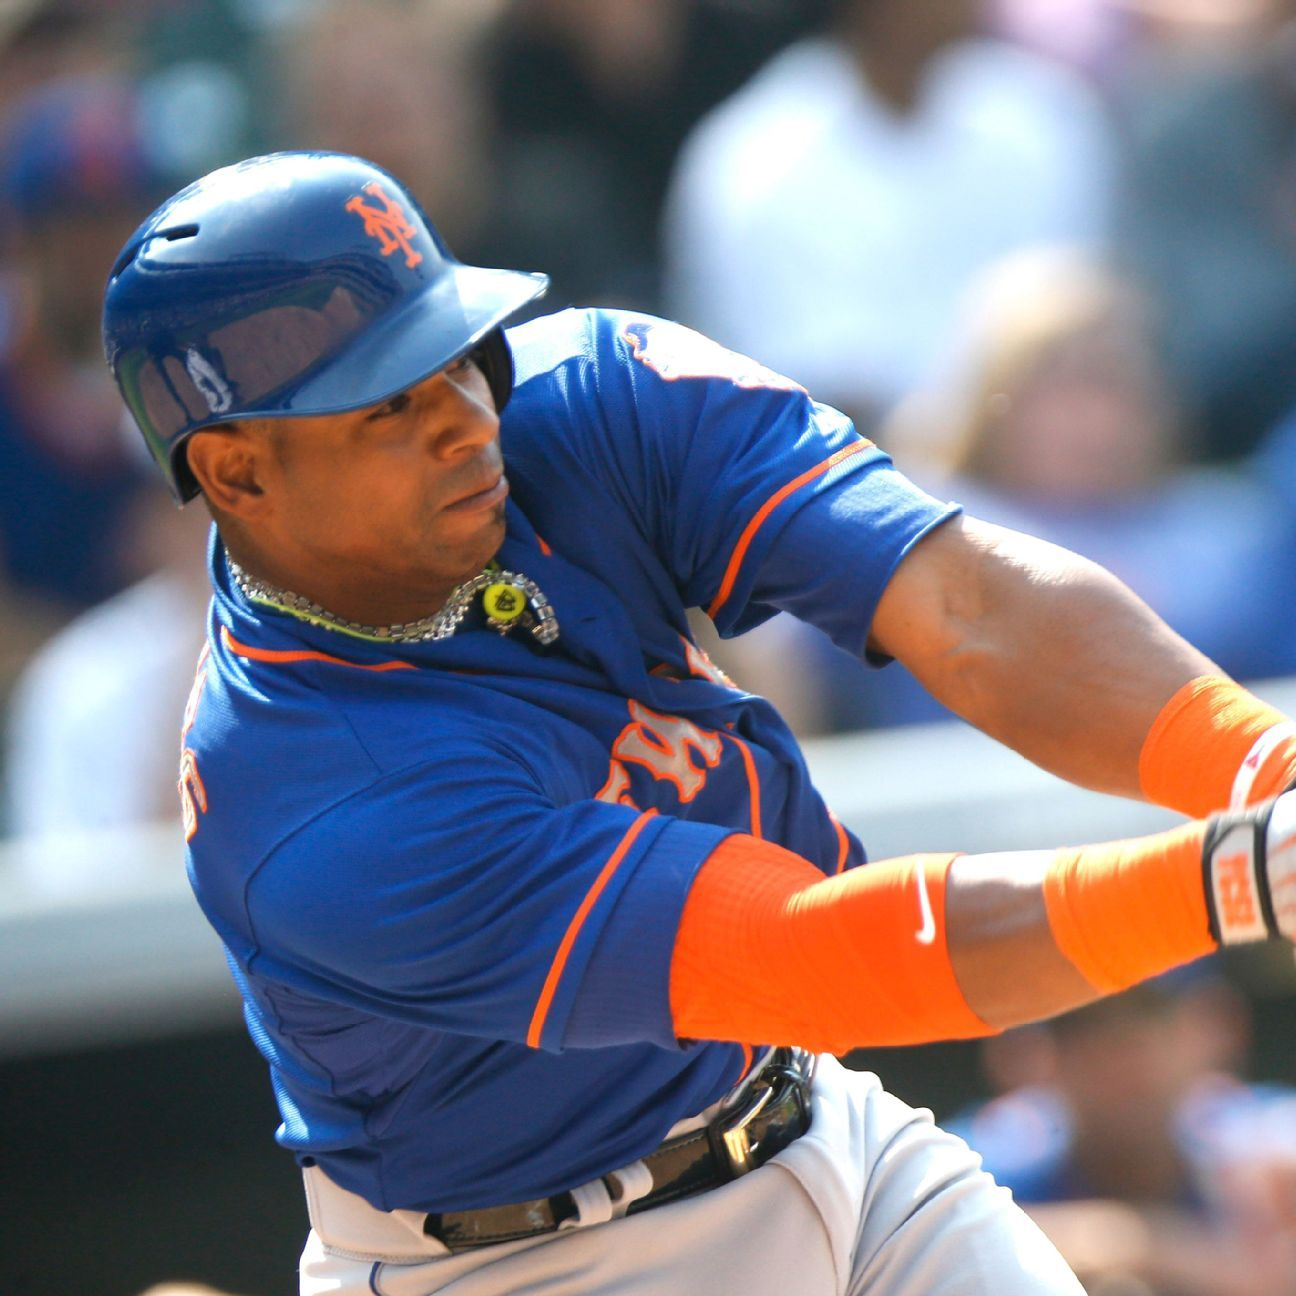 Kernels Take A Look At The Week Cespedes, The Cubs And The